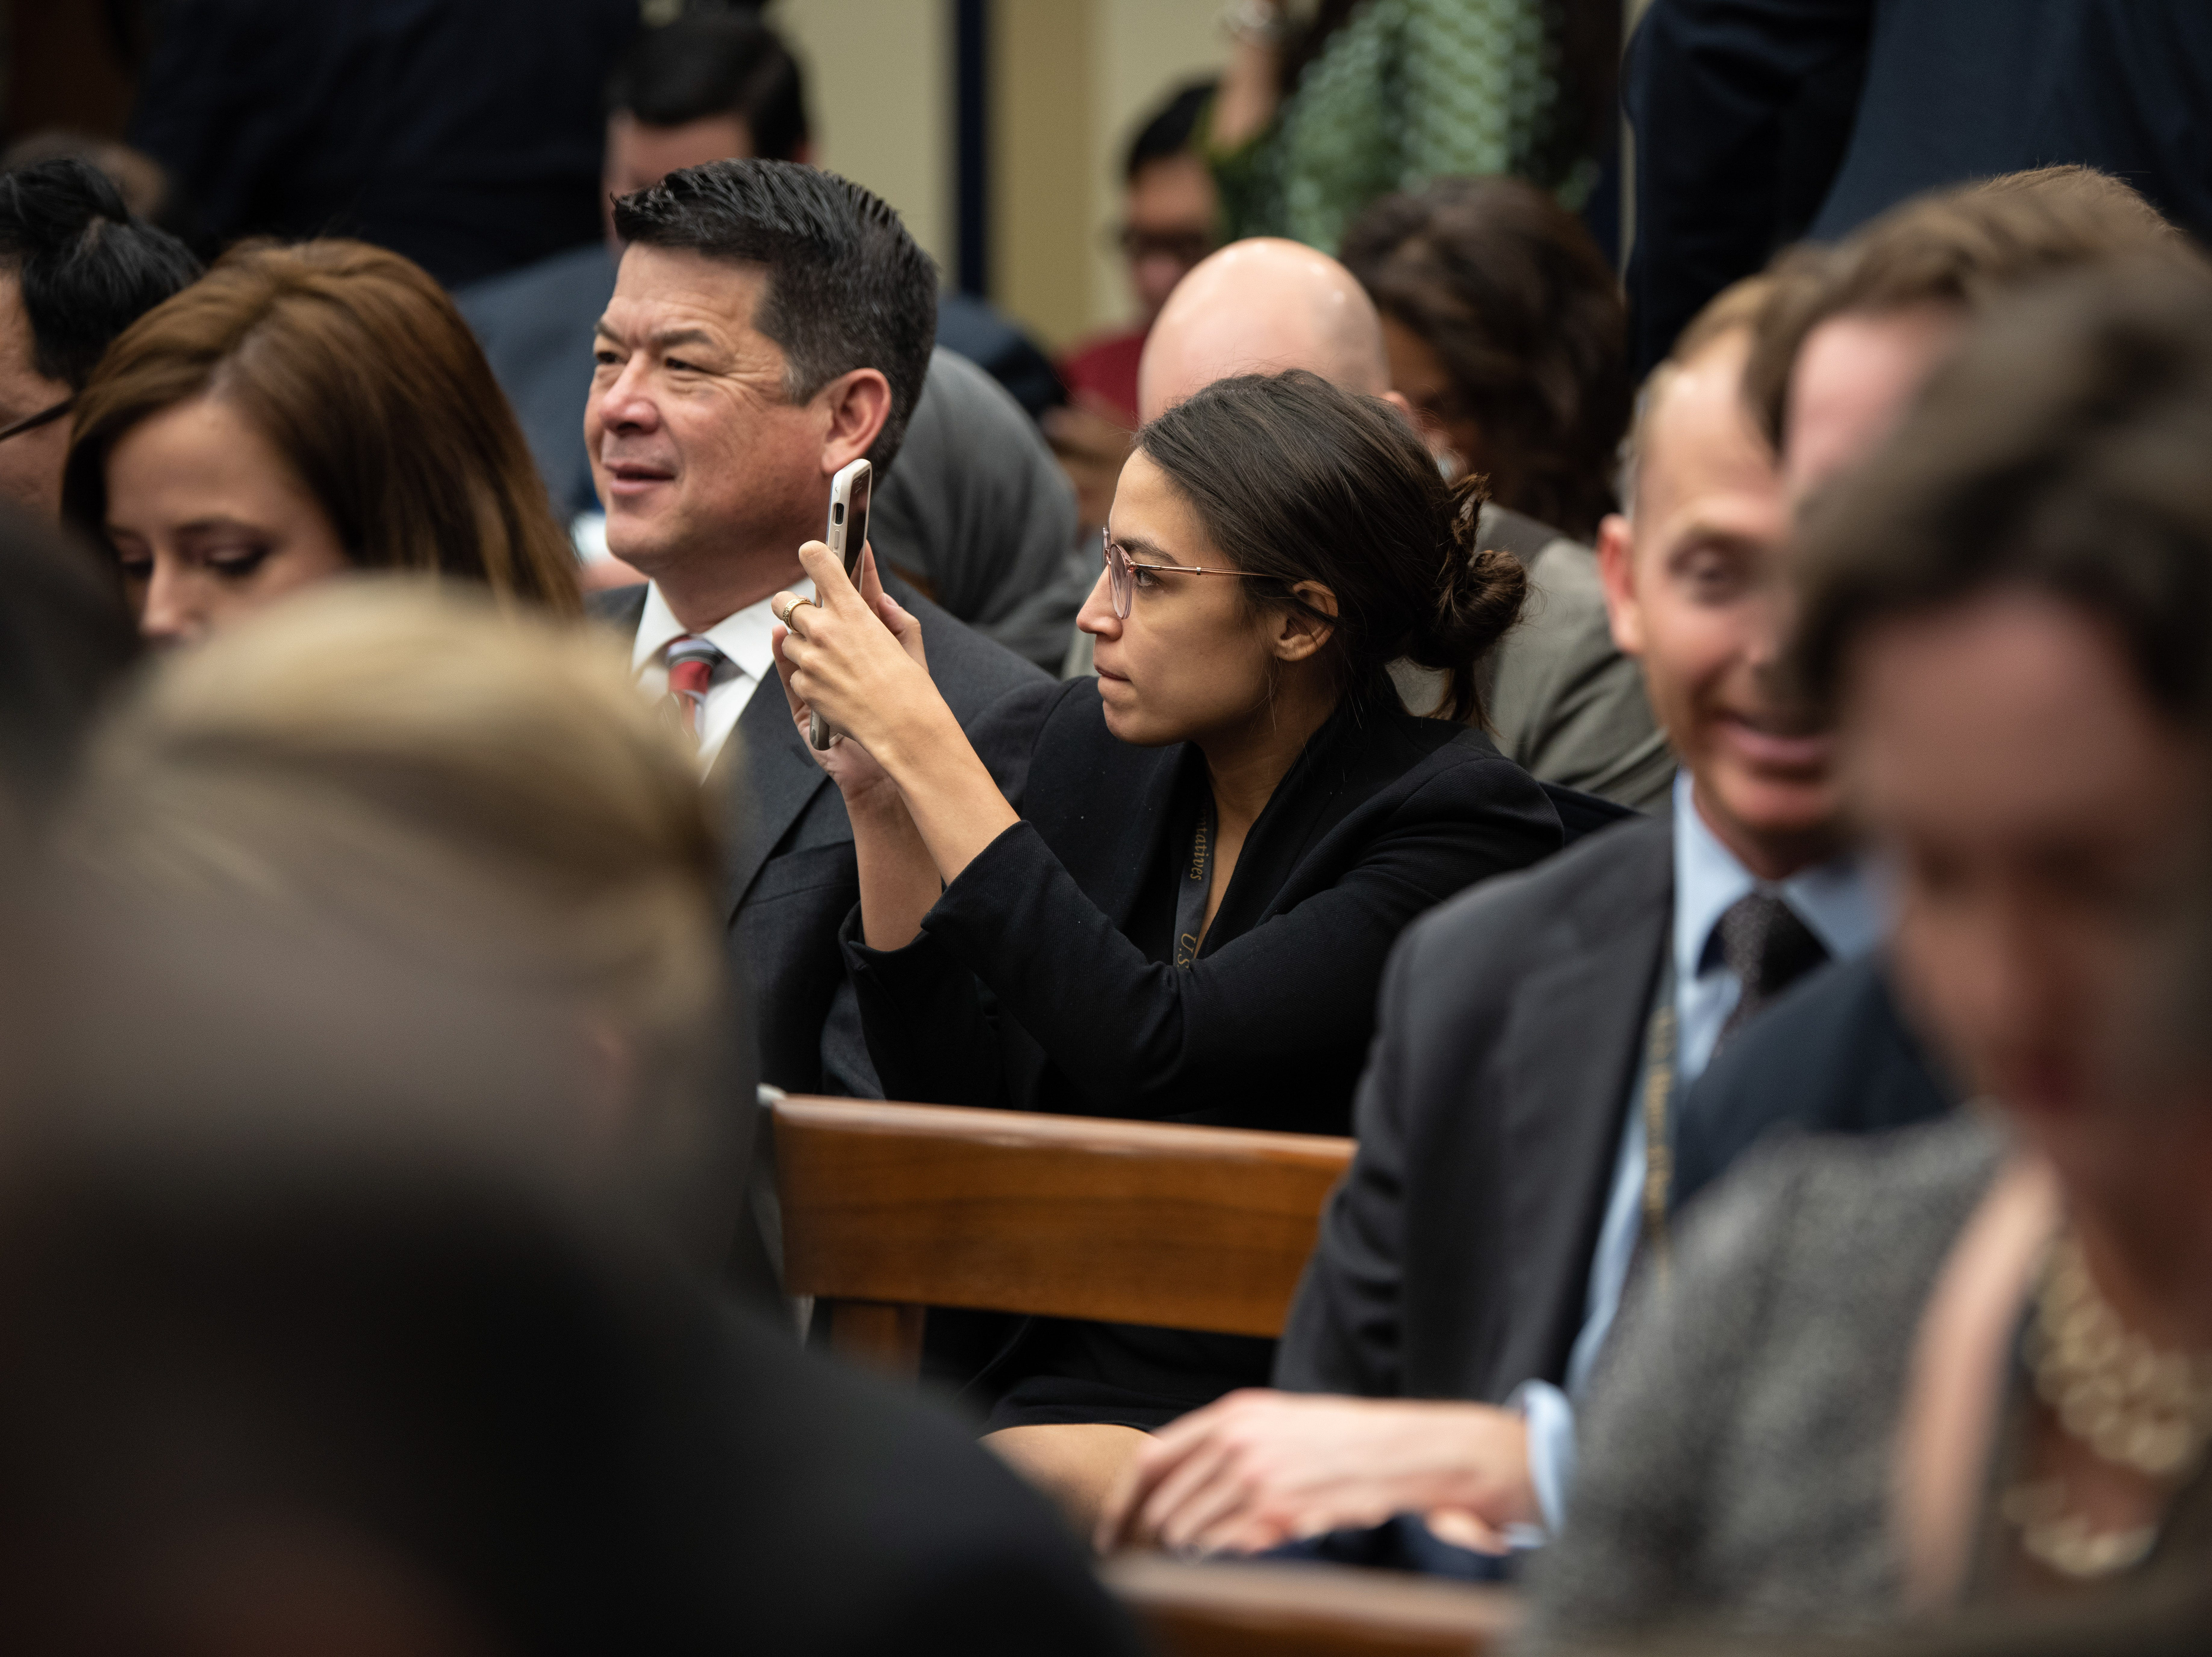 {Nov. 30, 2018} {10:30 a.m.} -- Washington, DC  -- Rep. Elect Alexandria Ocasio-Cortez (D, N.Y.) takes photos ahead of the lottery that determines the order in which new members of Congress will select their offices. -- Photo by Hannah Gaber, USA TODAY Staff